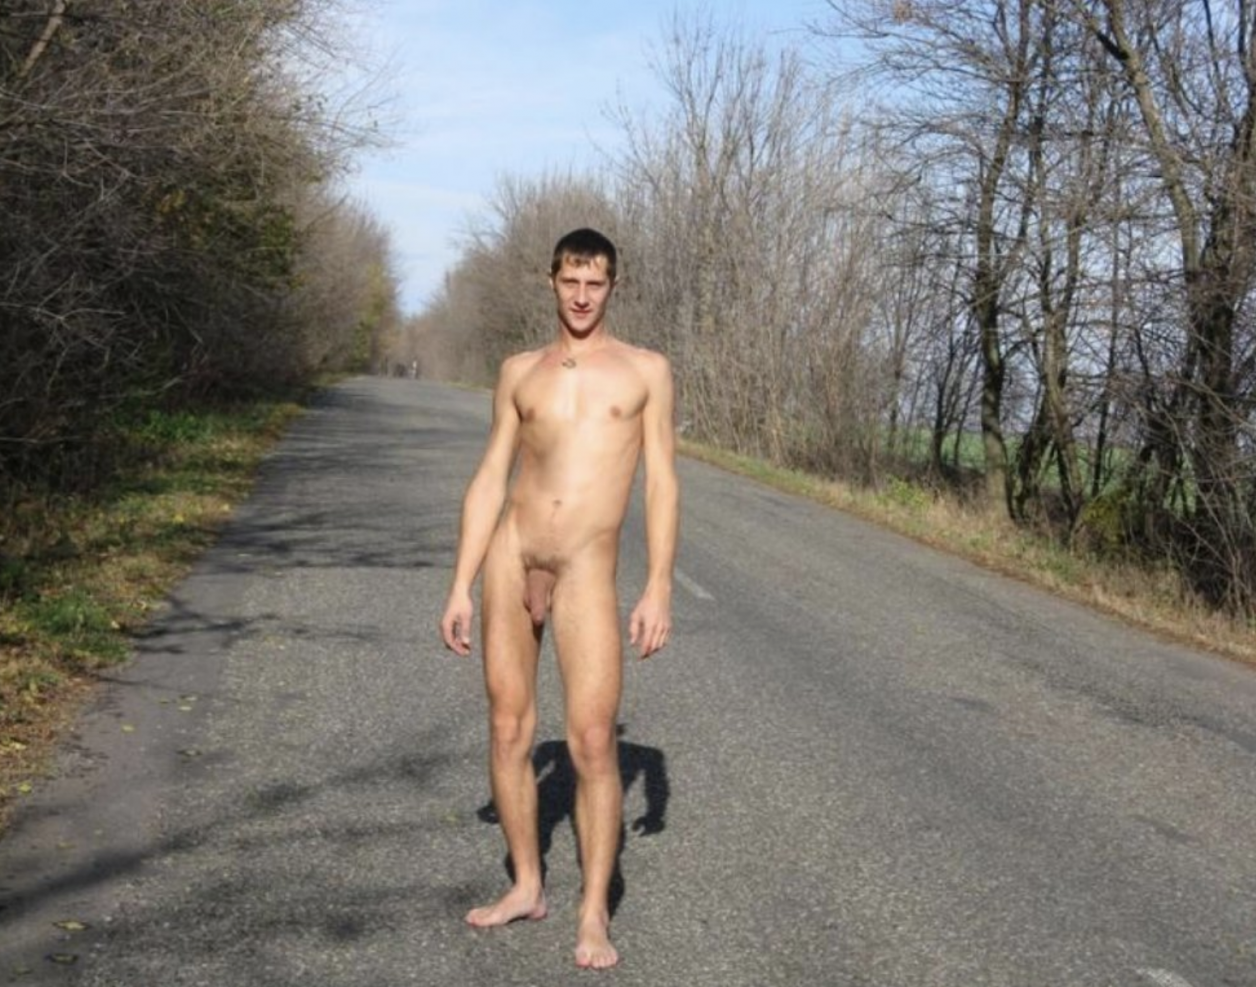 Naked man caught strolling across bristol's newest bridge after cheeky skinny dip